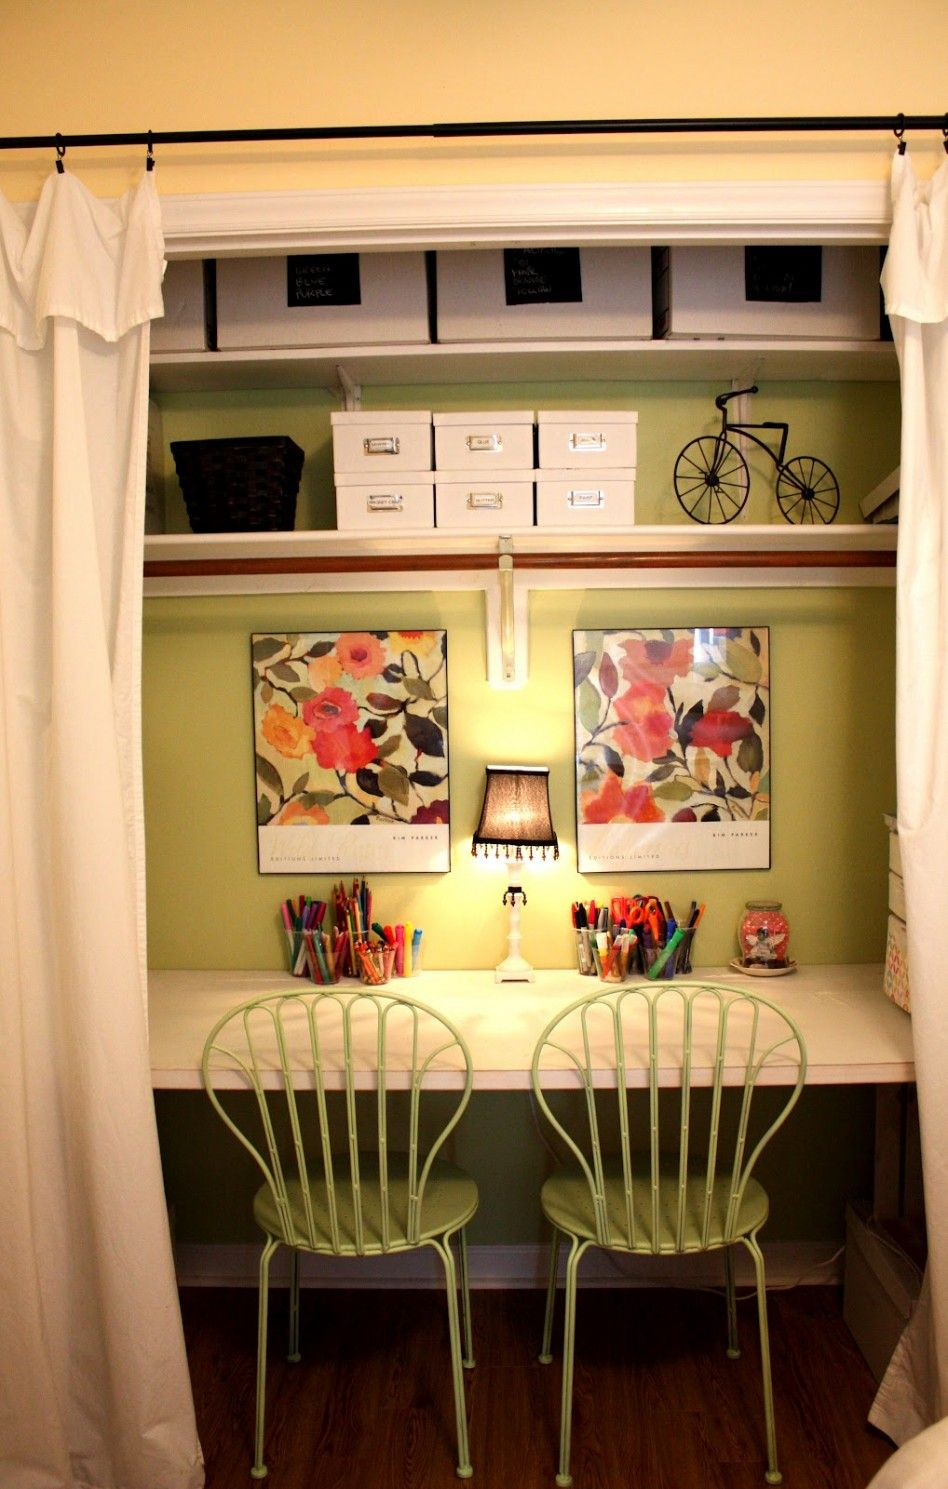 Furniture under stair shelves and storage space ideas for Small dining room storage ideas